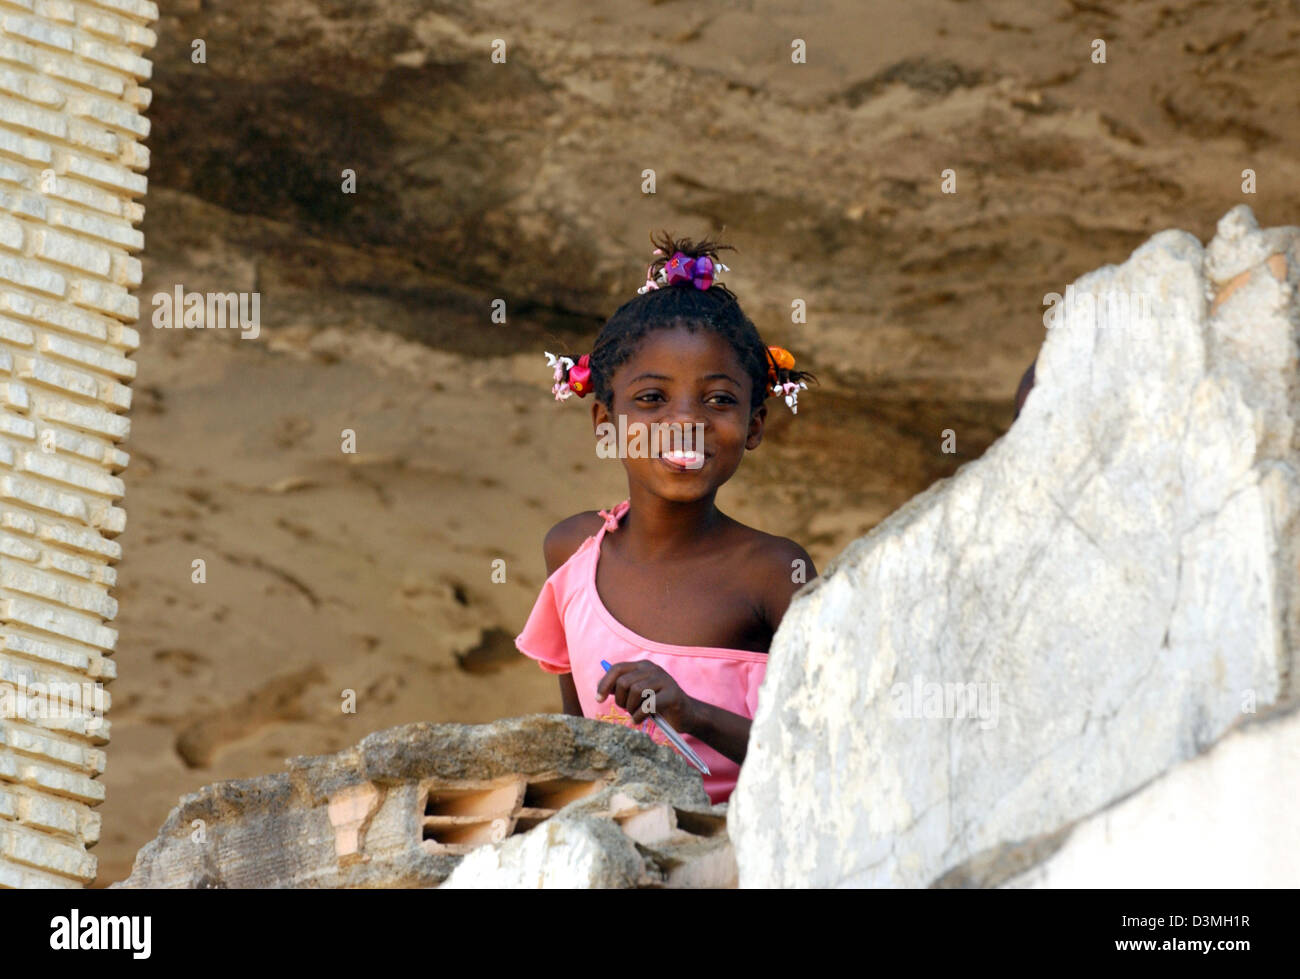 (dpa file) - A girl smiles despite the war-ravaged surroundings in the province city of Huambo, Angola, 21 July - Stock Image